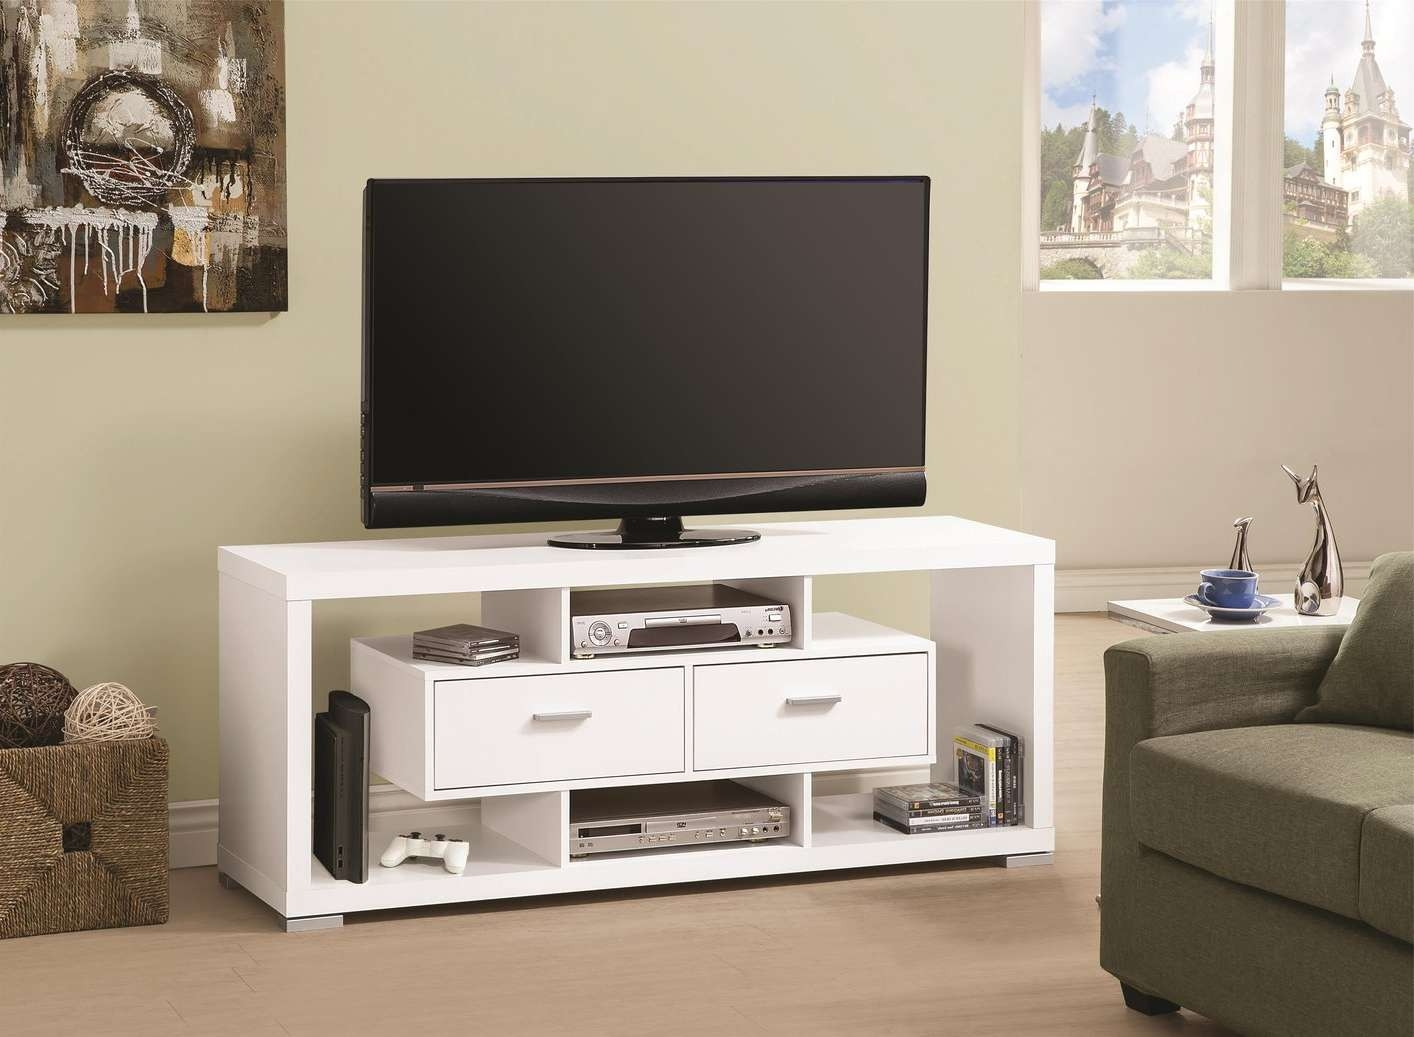 White Wood Tv Stand – Steal A Sofa Furniture Outlet Los Angeles Ca In Tv Stands White (View 19 of 20)